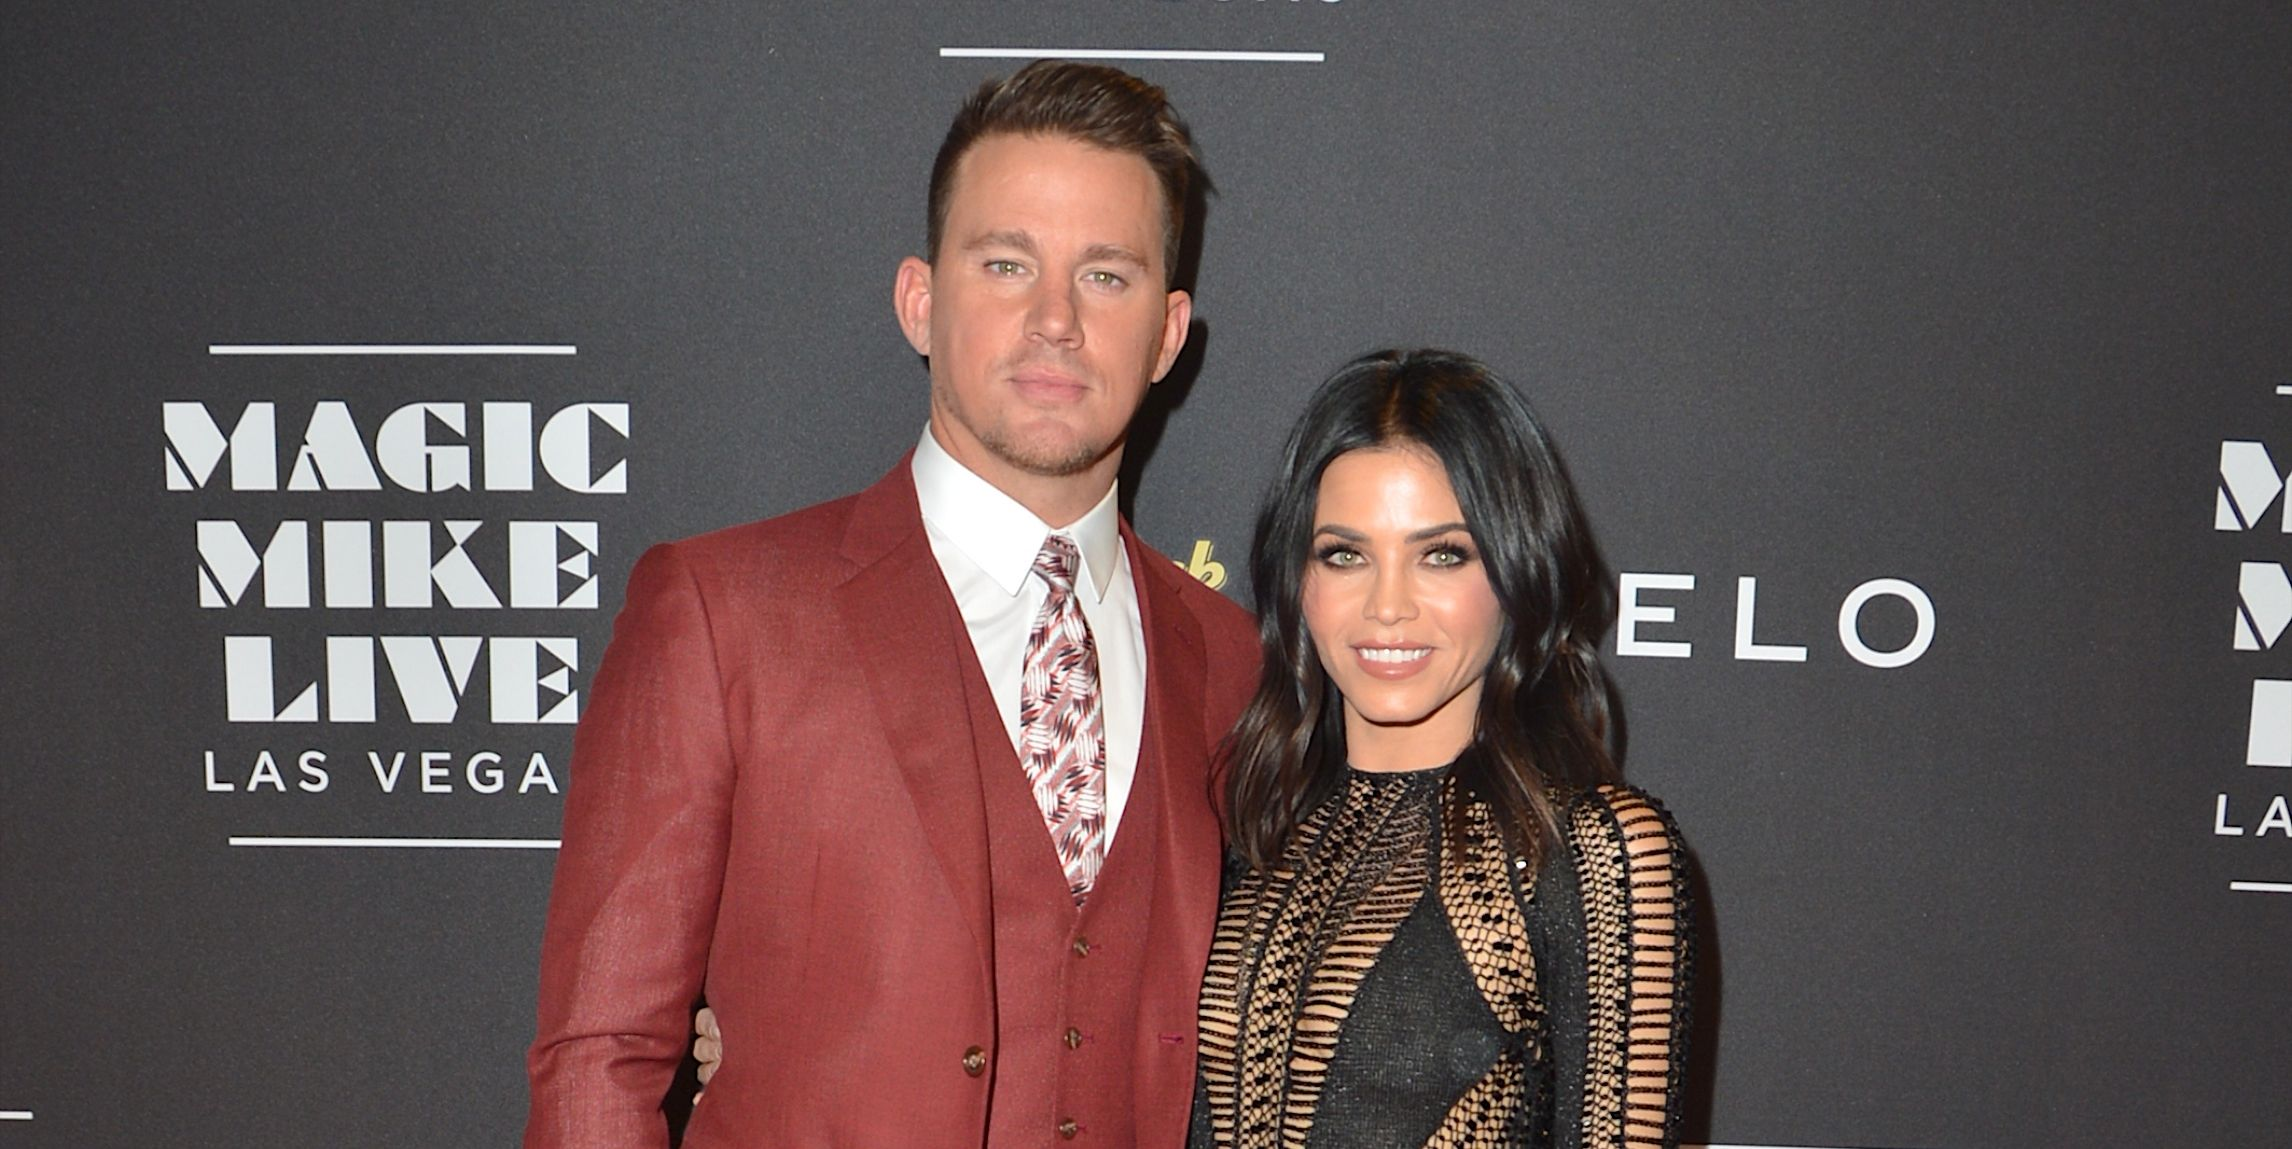 11 adorable things Channing Tatum and Jenna Dewan have said about each other